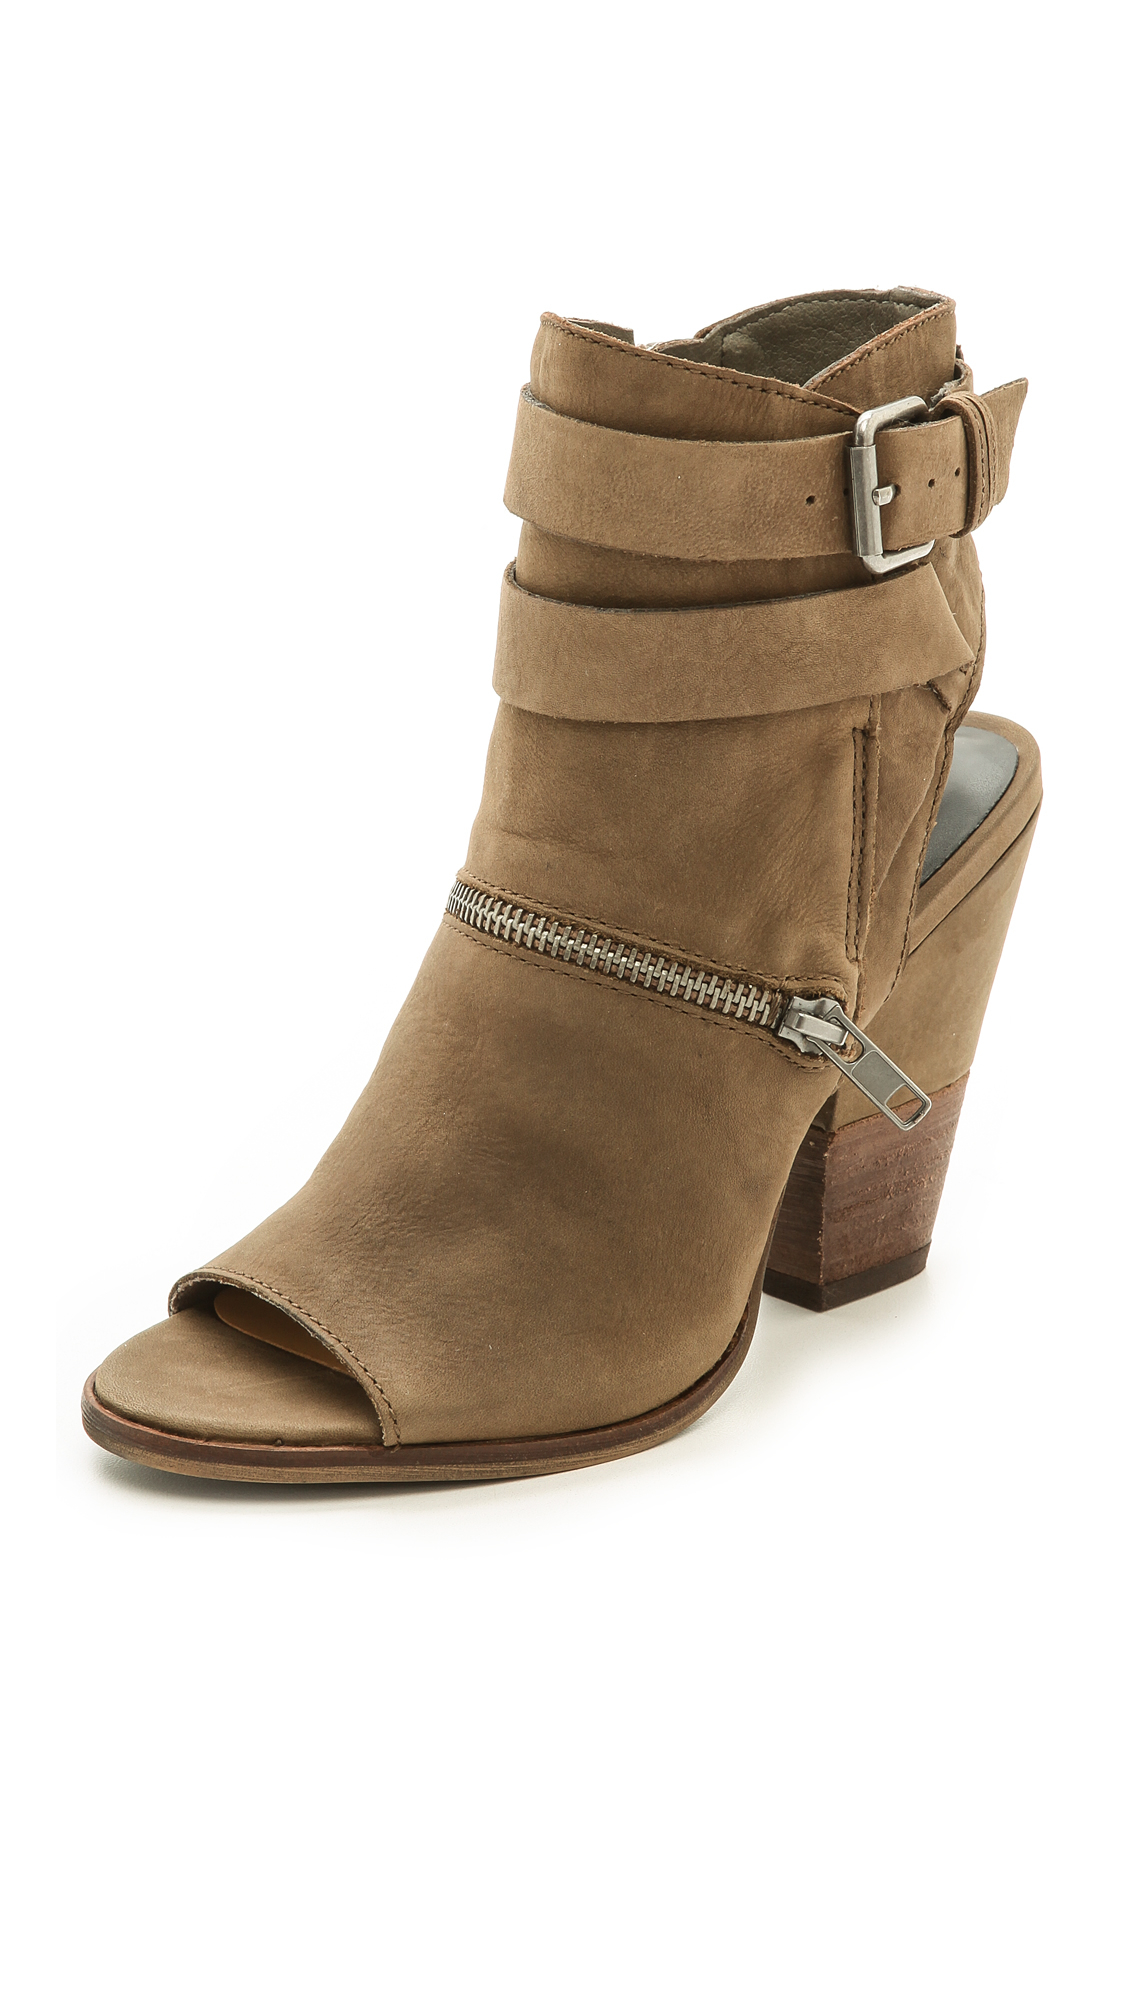 Dolce Vita Nayla Open Toe Booties Moss In Brown Moss Lyst